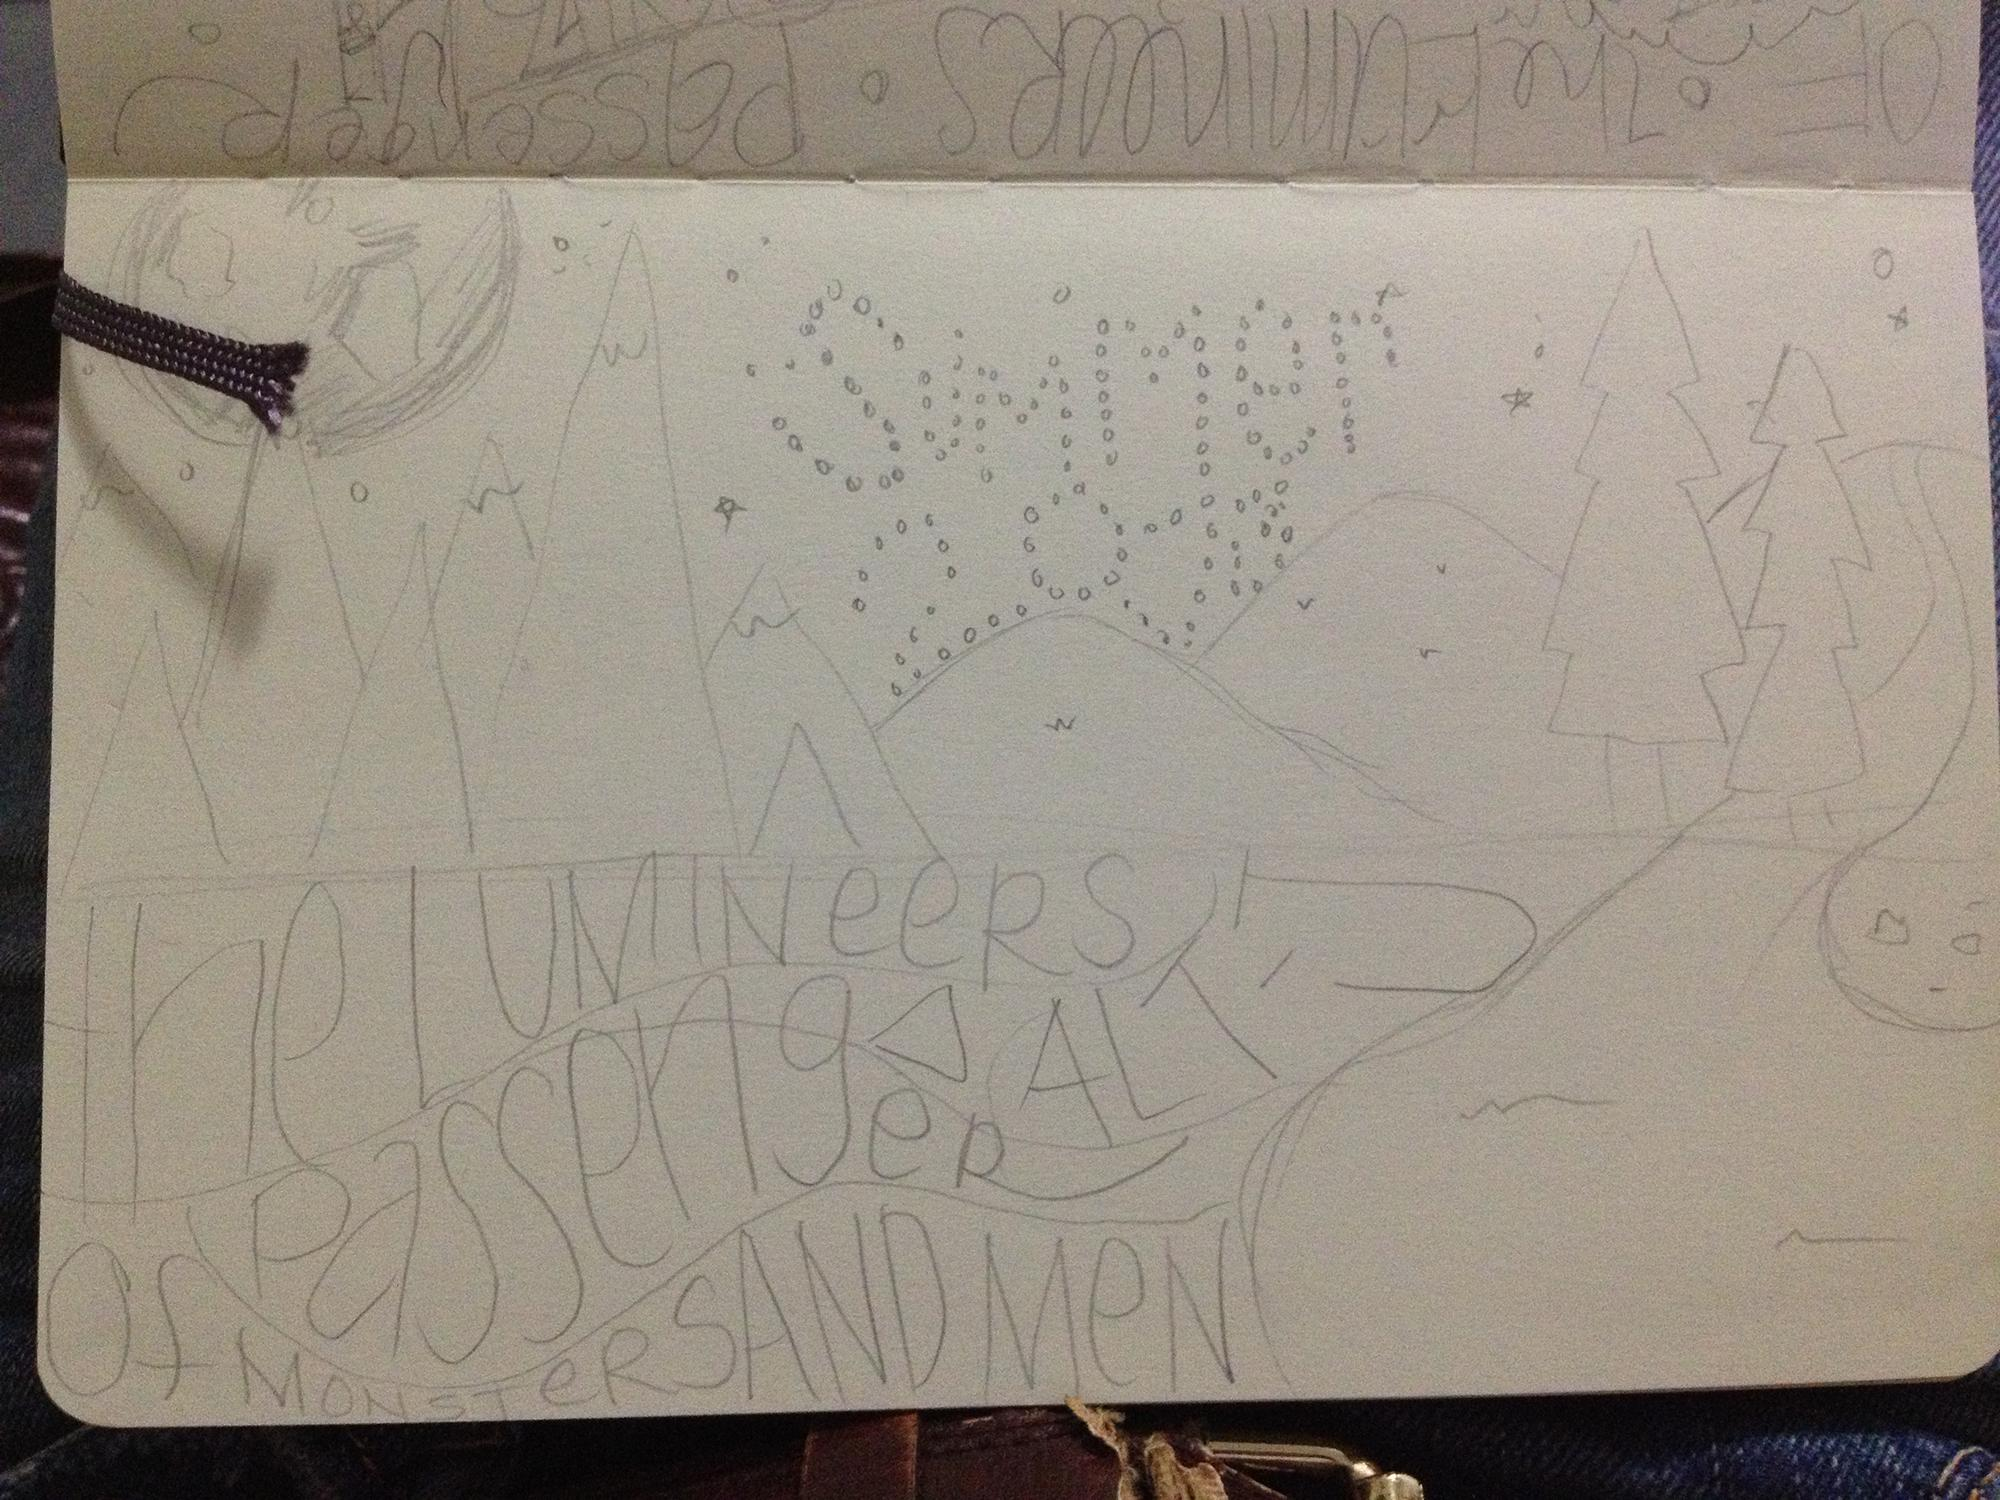 Alt J, Of Monsters and Men, the Lumineers, and Passenger - image 14 - student project